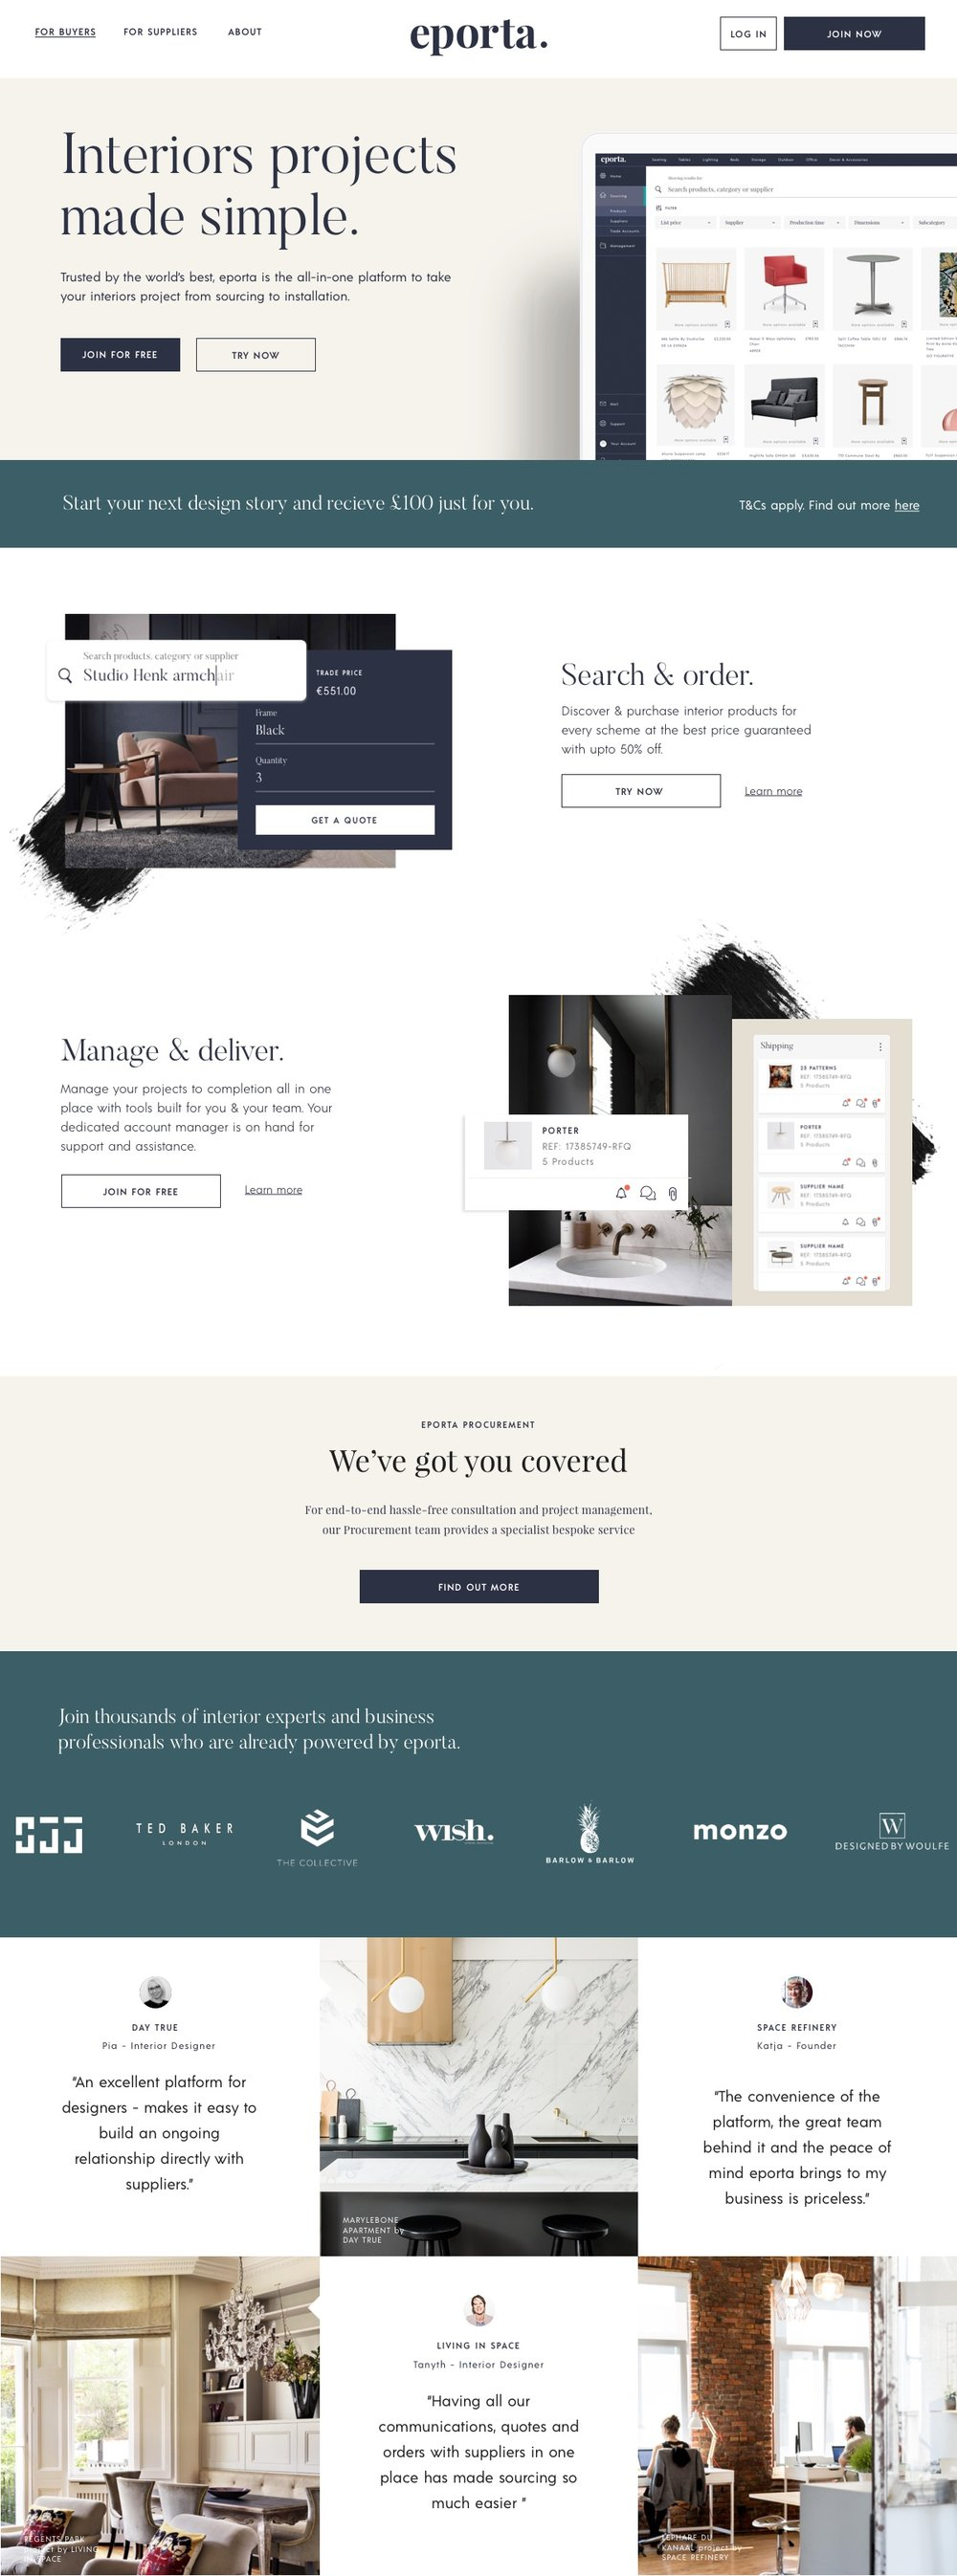 eporta website design